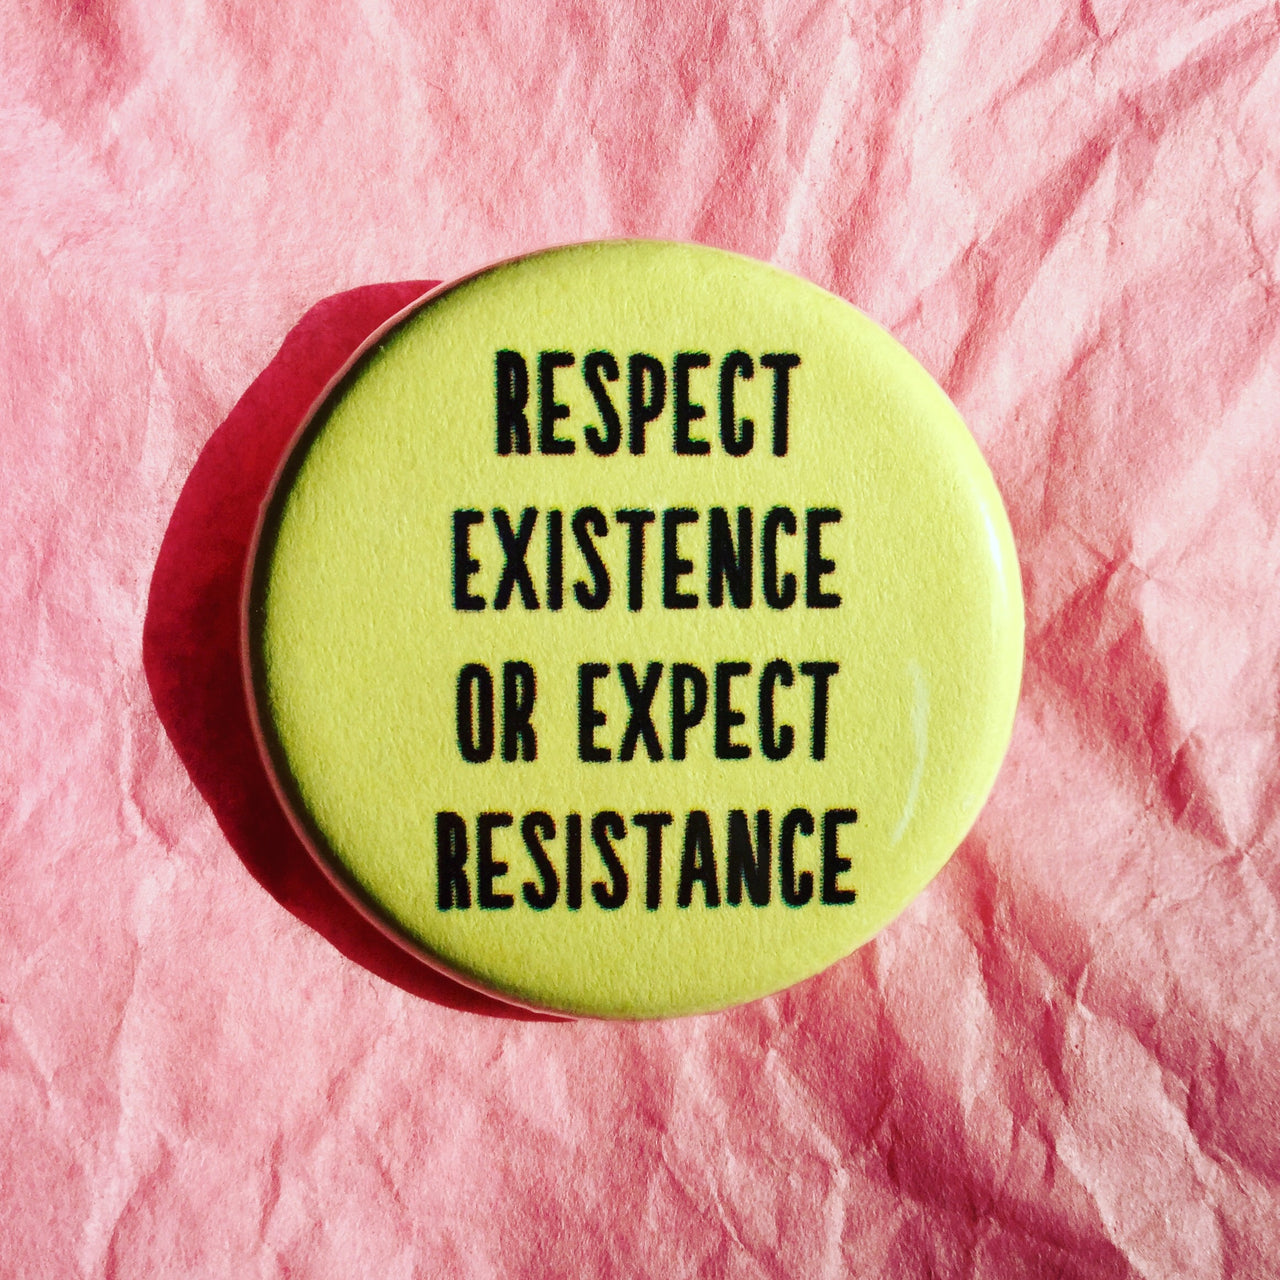 Respect existence or expect resistance - Radical Buttons